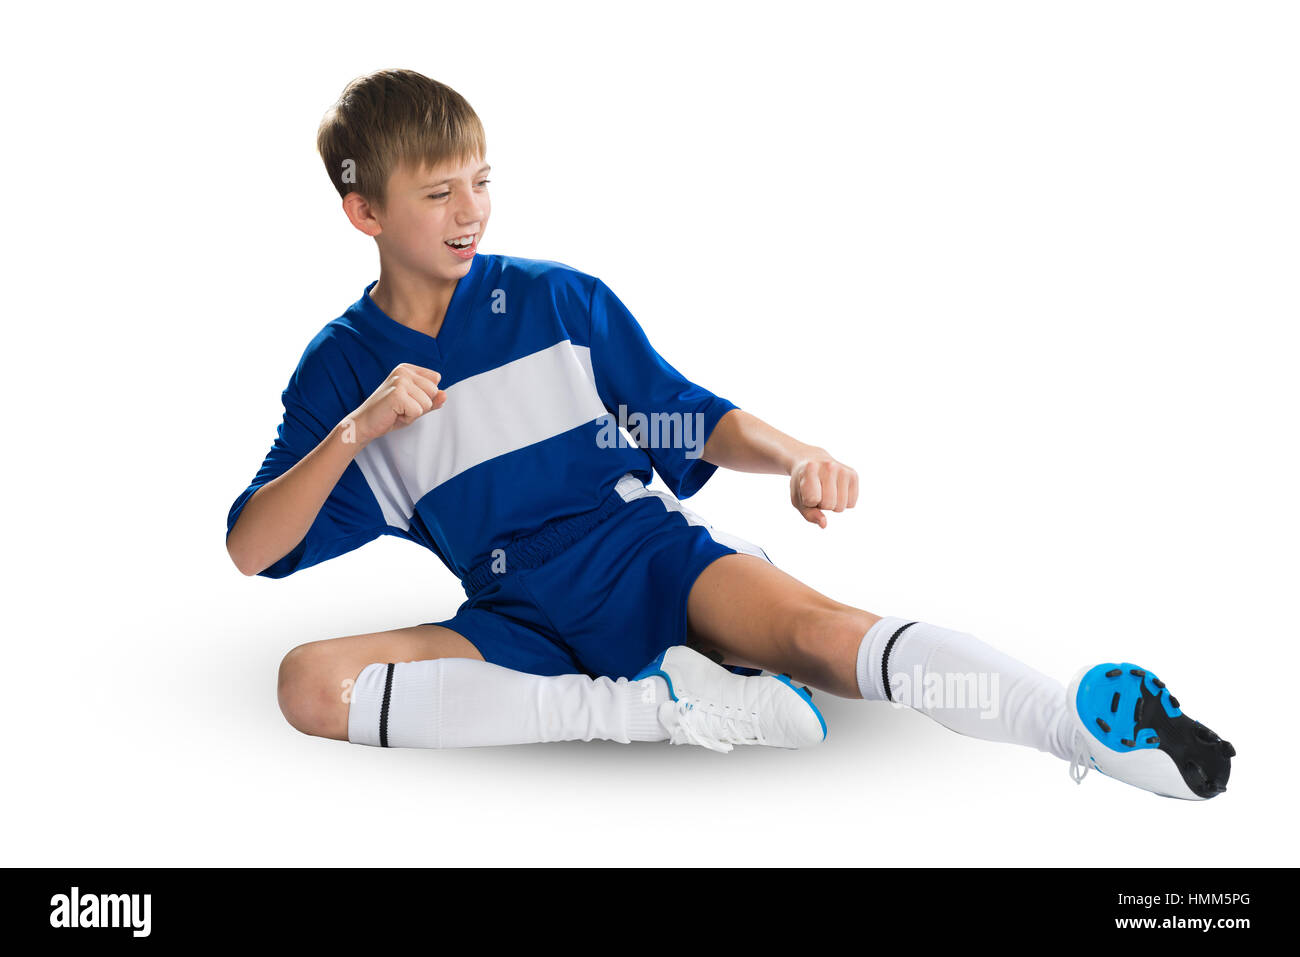 Young footballer - Stock Image